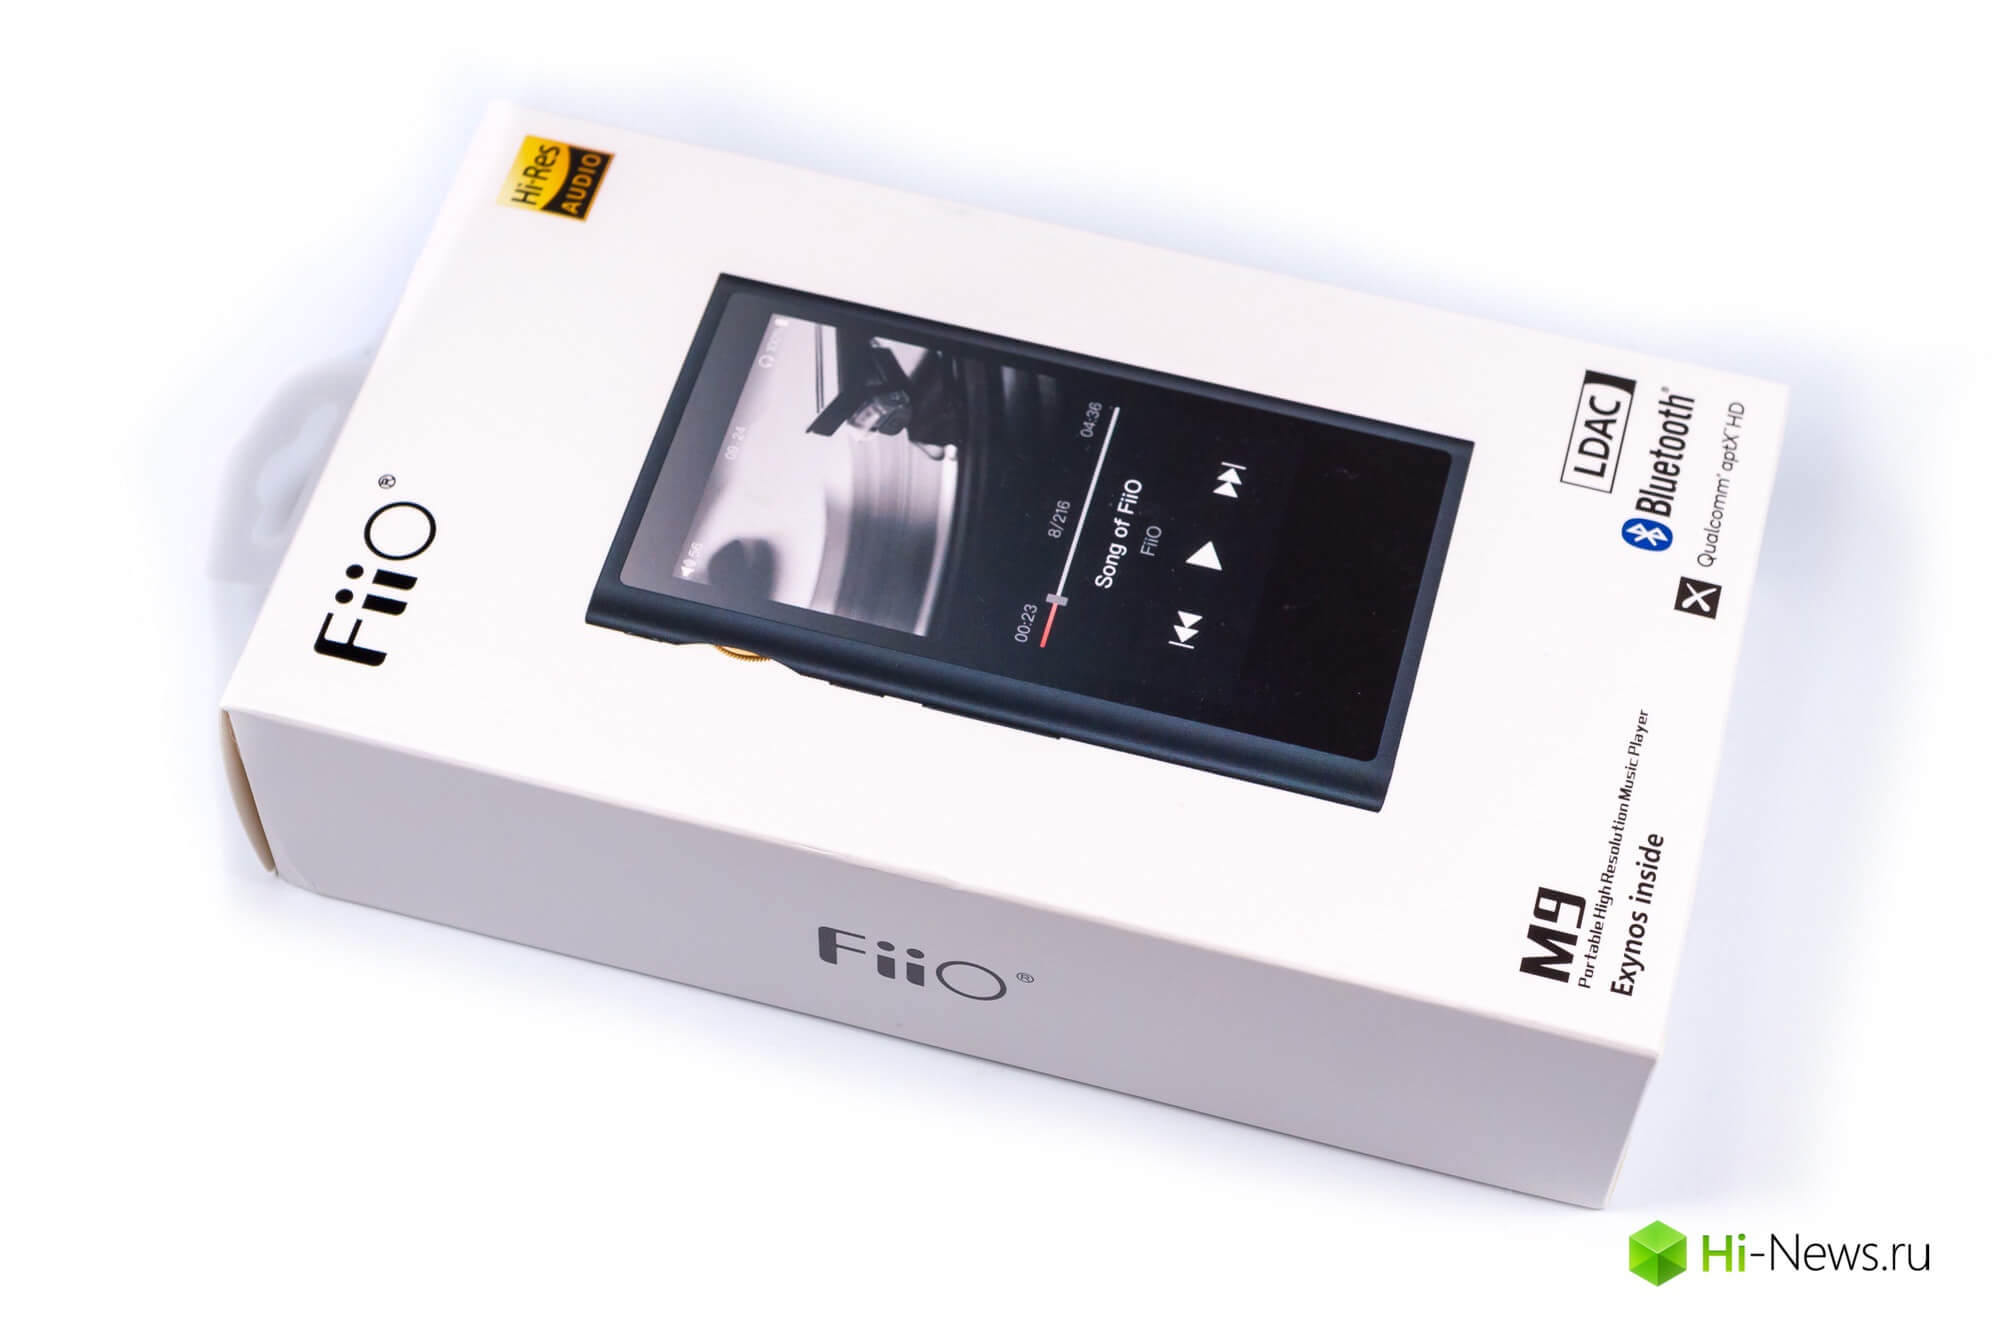 Review of FiiO player M9 — modern features without